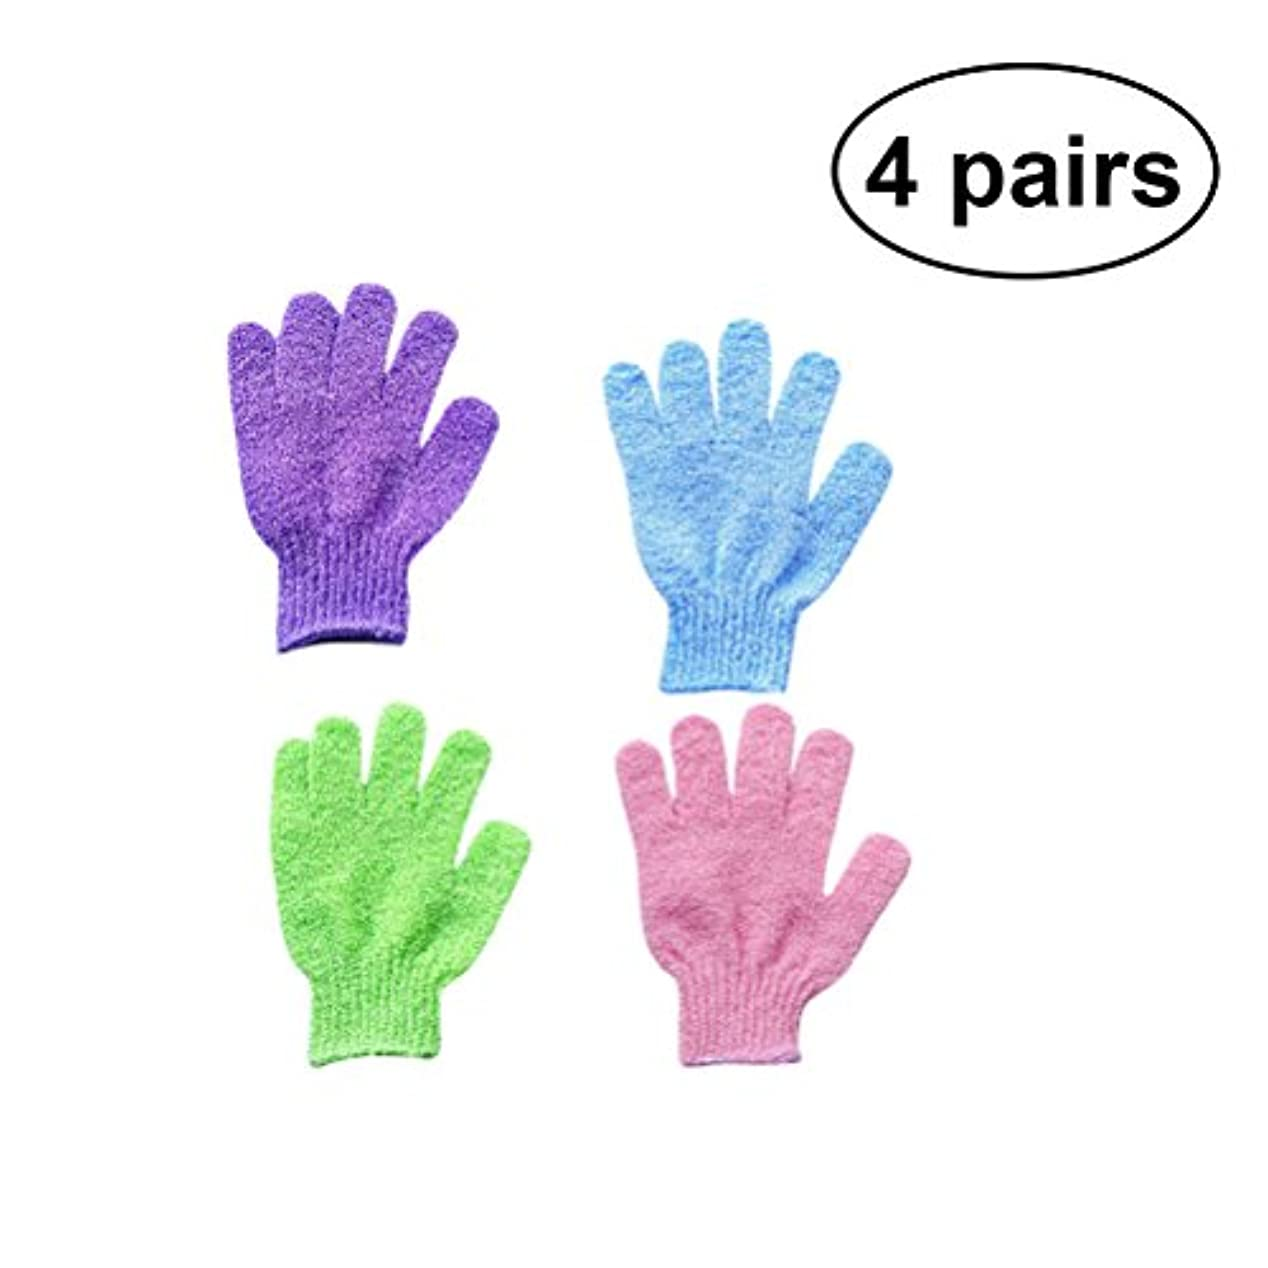 神経衰弱ブレークフローHealifty 4 Pairs Exfoliating Bath Gloves Shower Mitts Exfoliating Body Spa Massage Dead Skin Cell Remover